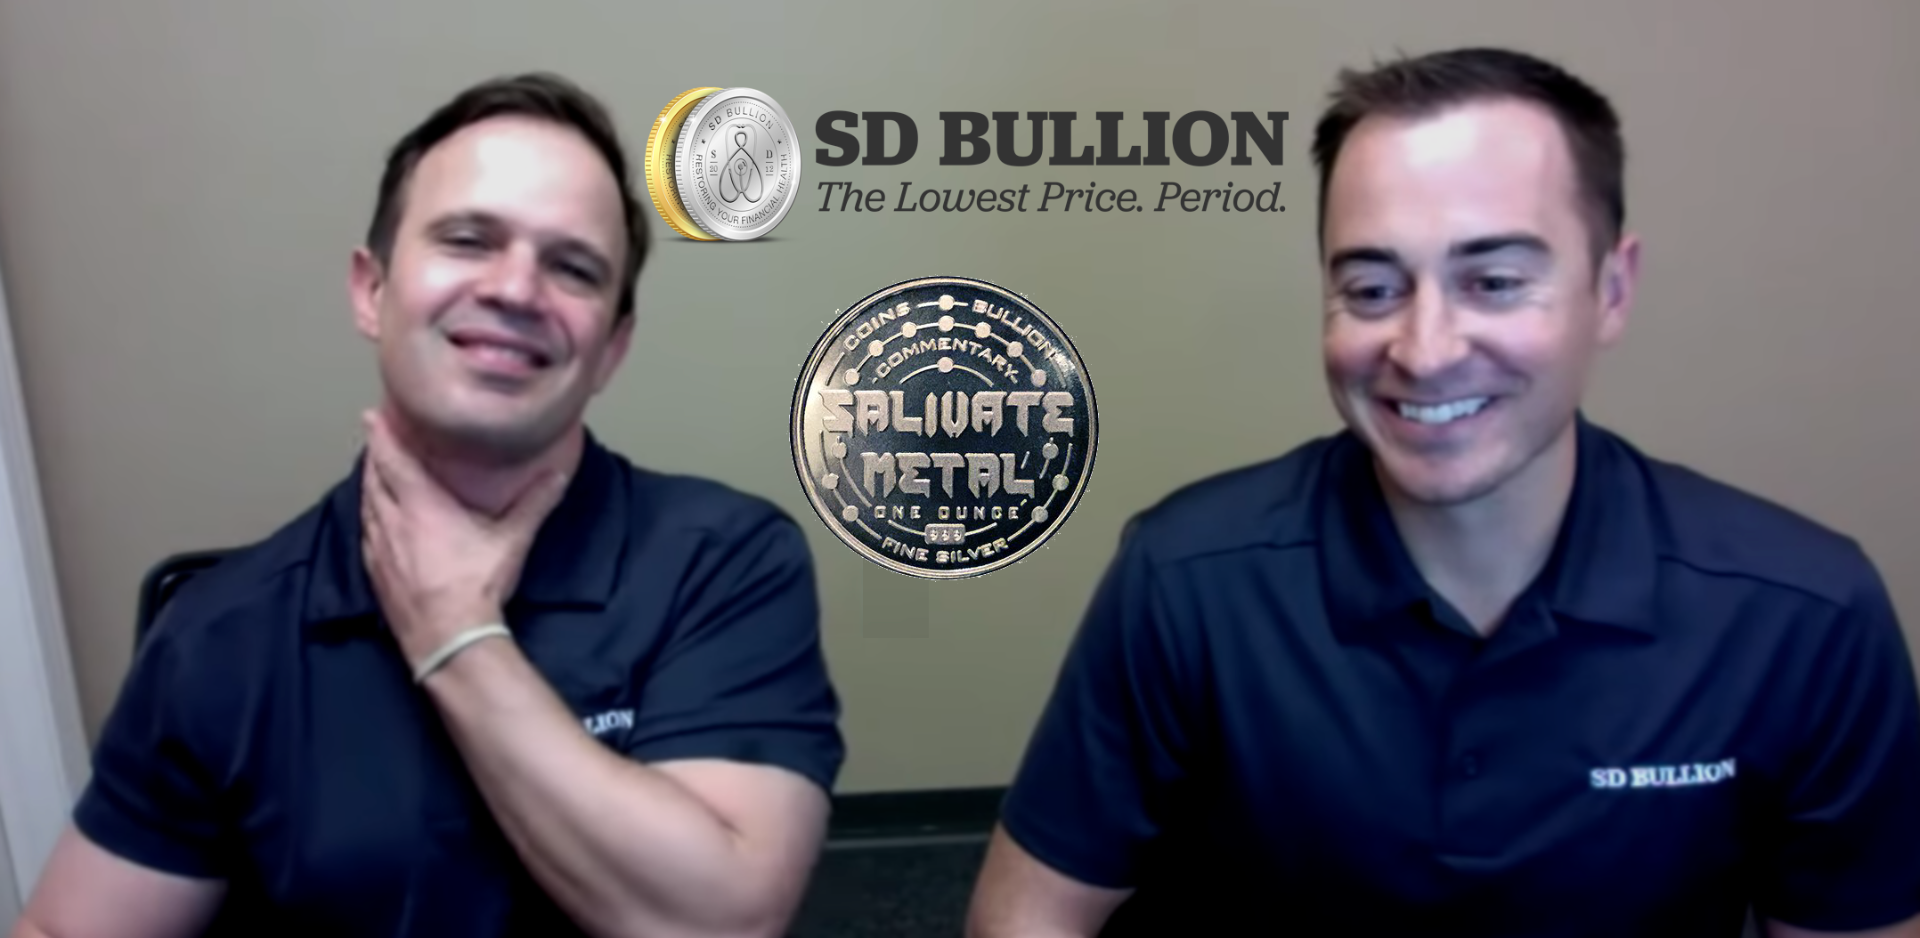 SD Bullion CEO in Rare Interview Inside the Precious Metals Industry